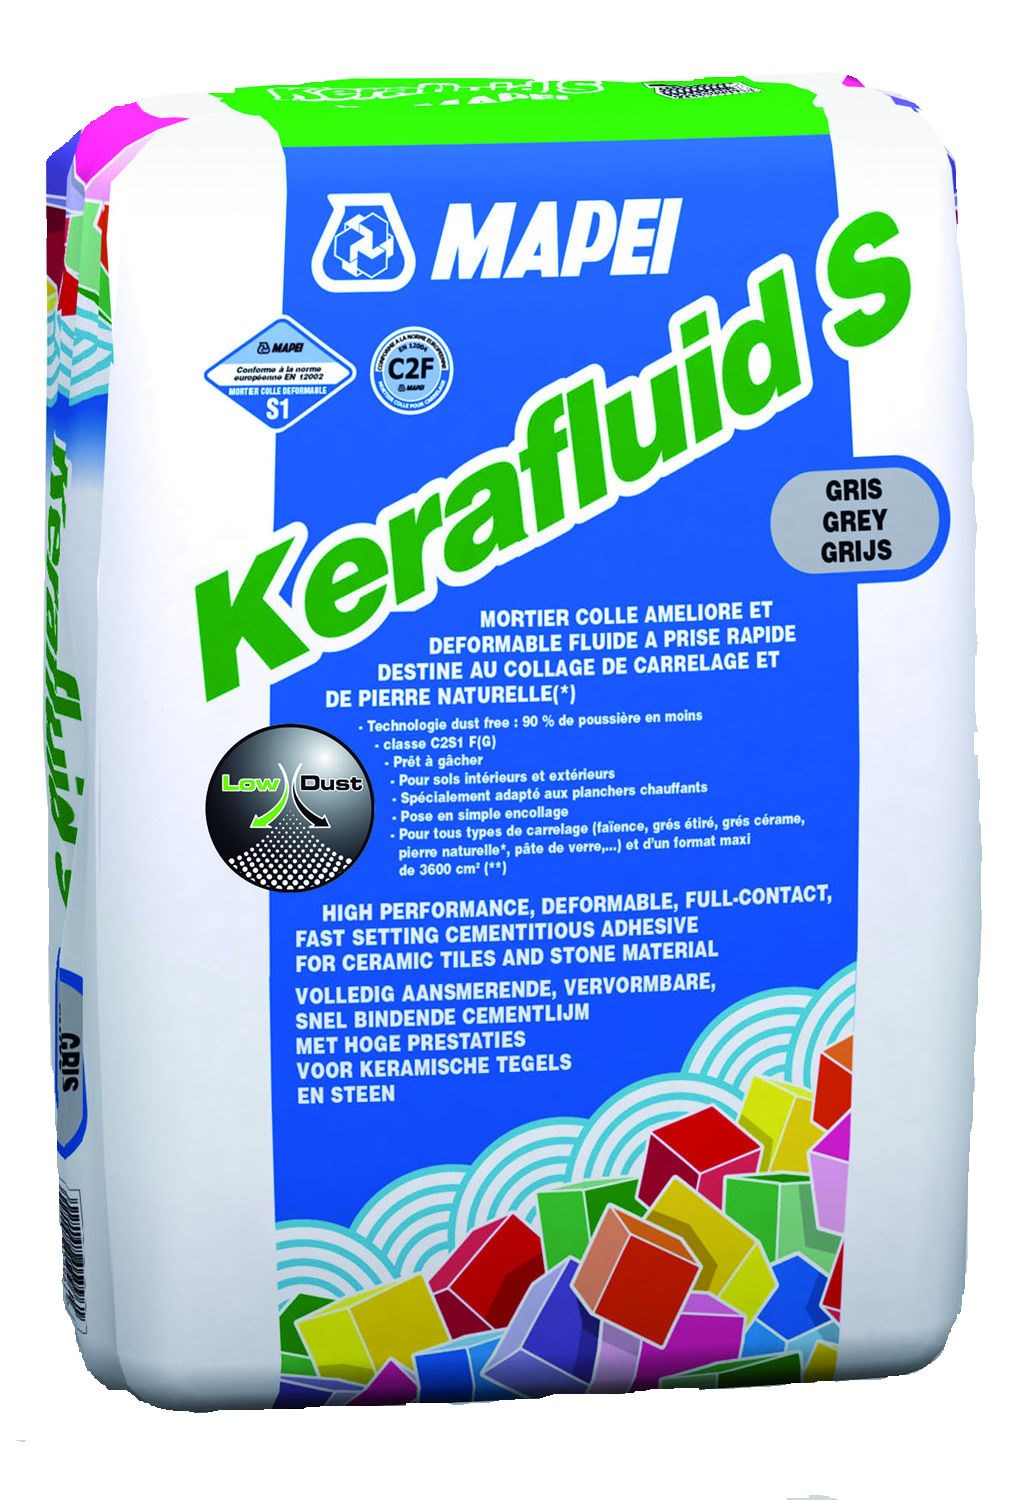 Mortier colle dformable pour carrelage c2 kerafluid s mapei for Colle pour coller carrelage sur carrelage